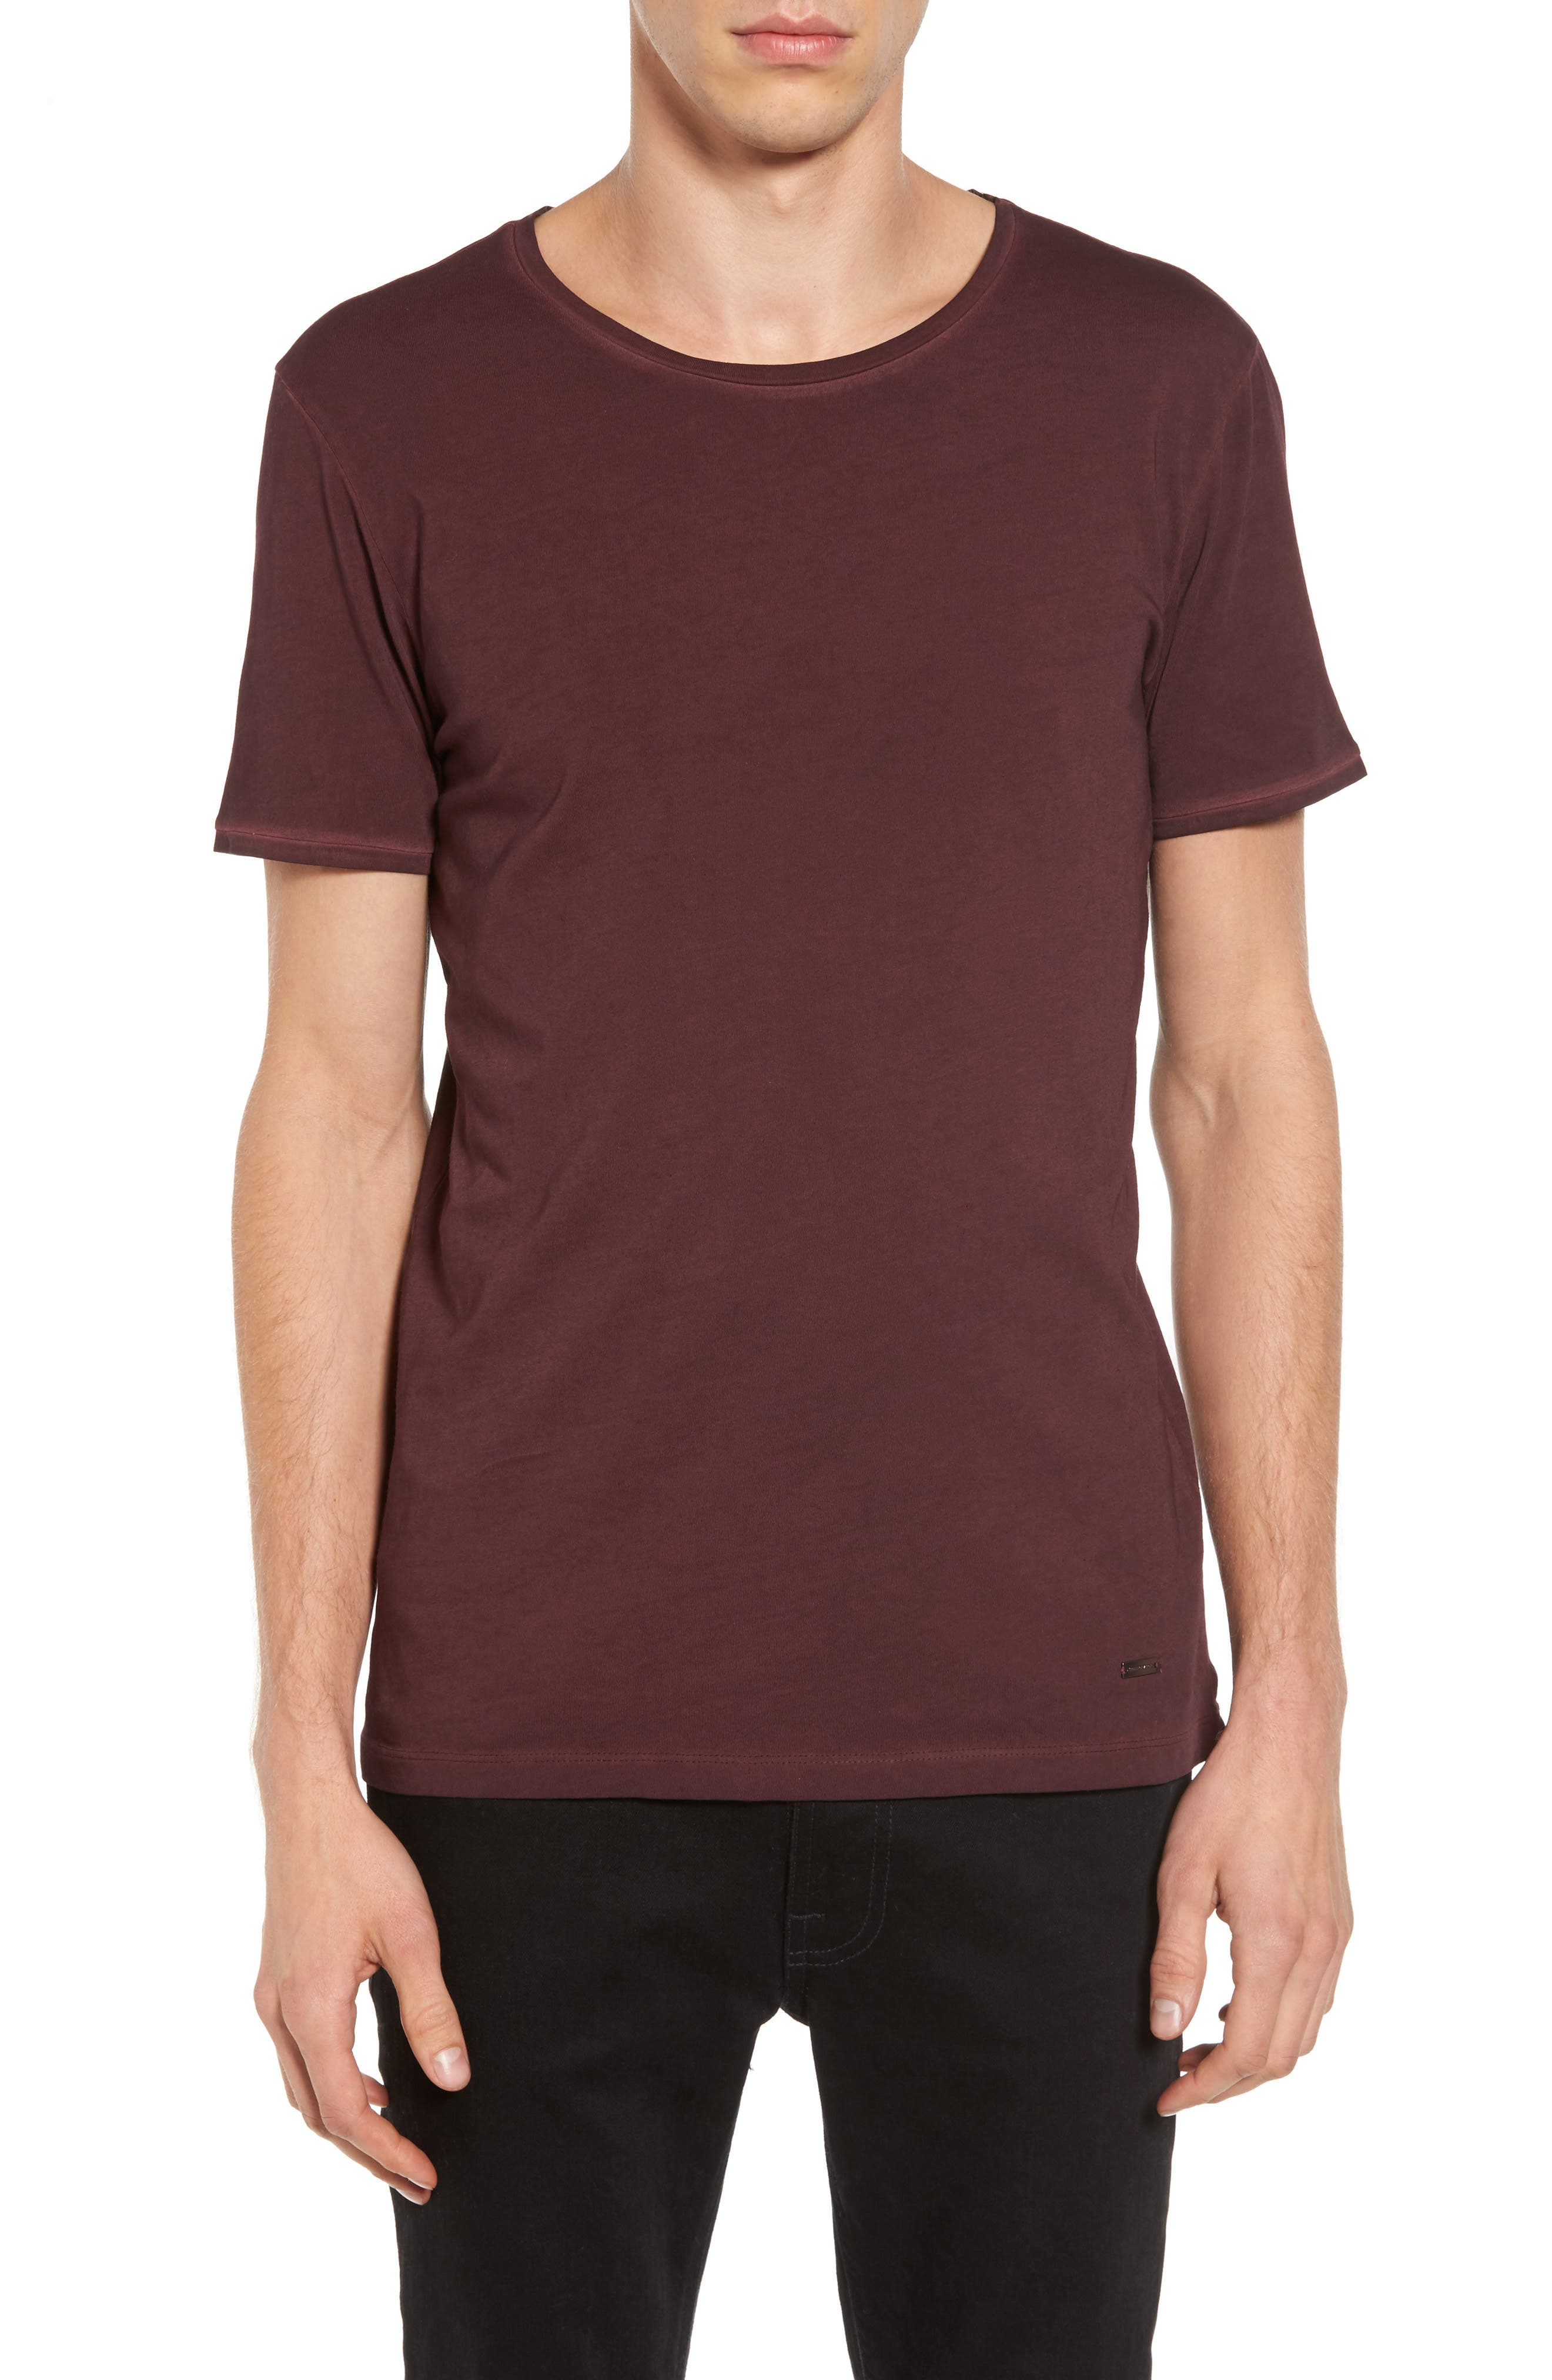 Touring T-Shirt,                         Main,                         color, Red